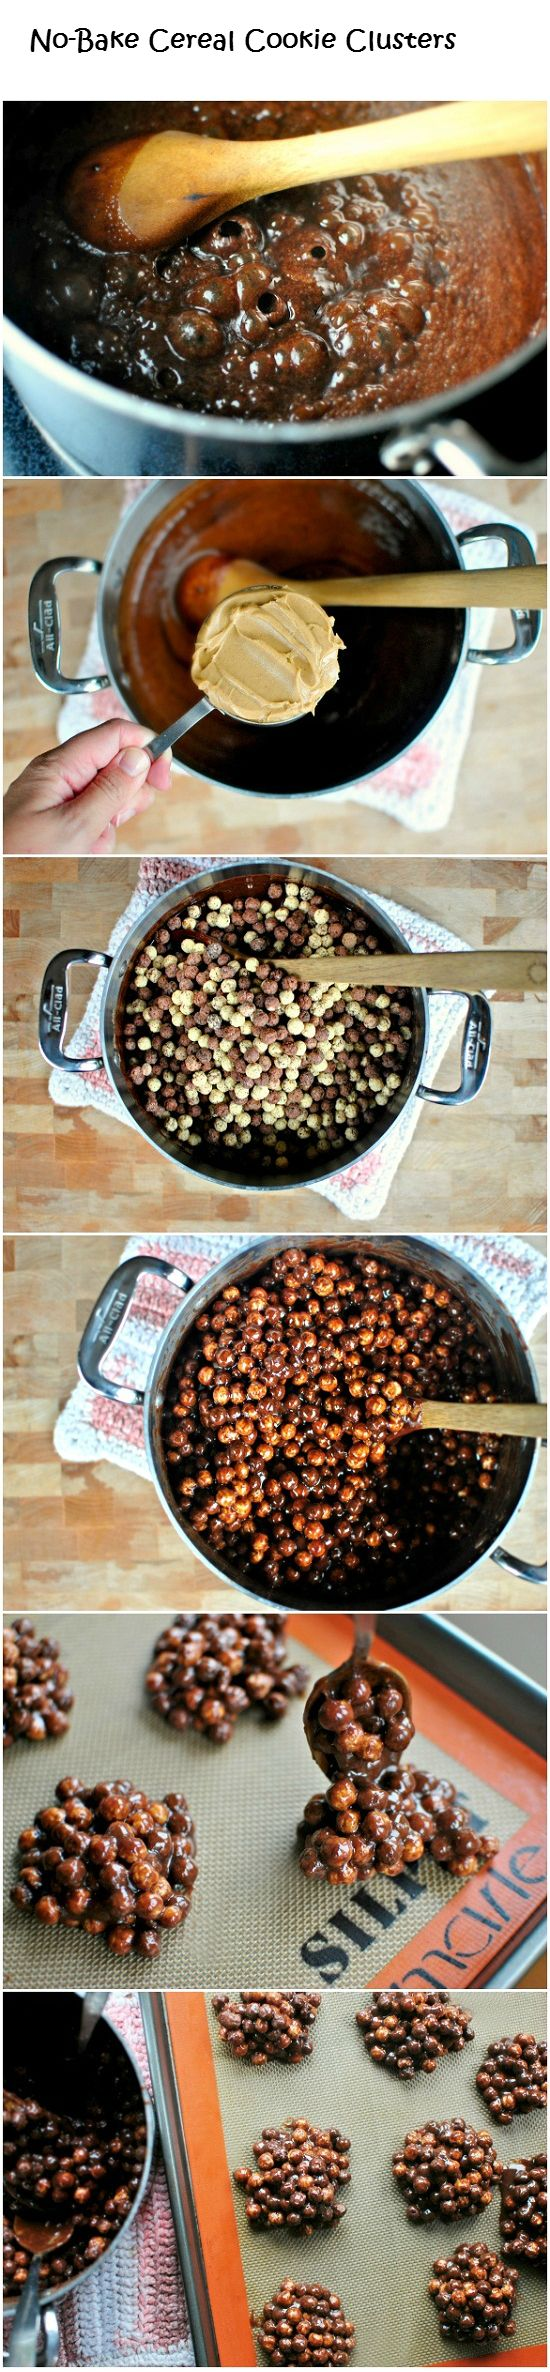 No-Bake Cereal Cookie Clusters - DIY Ideas 4 Home